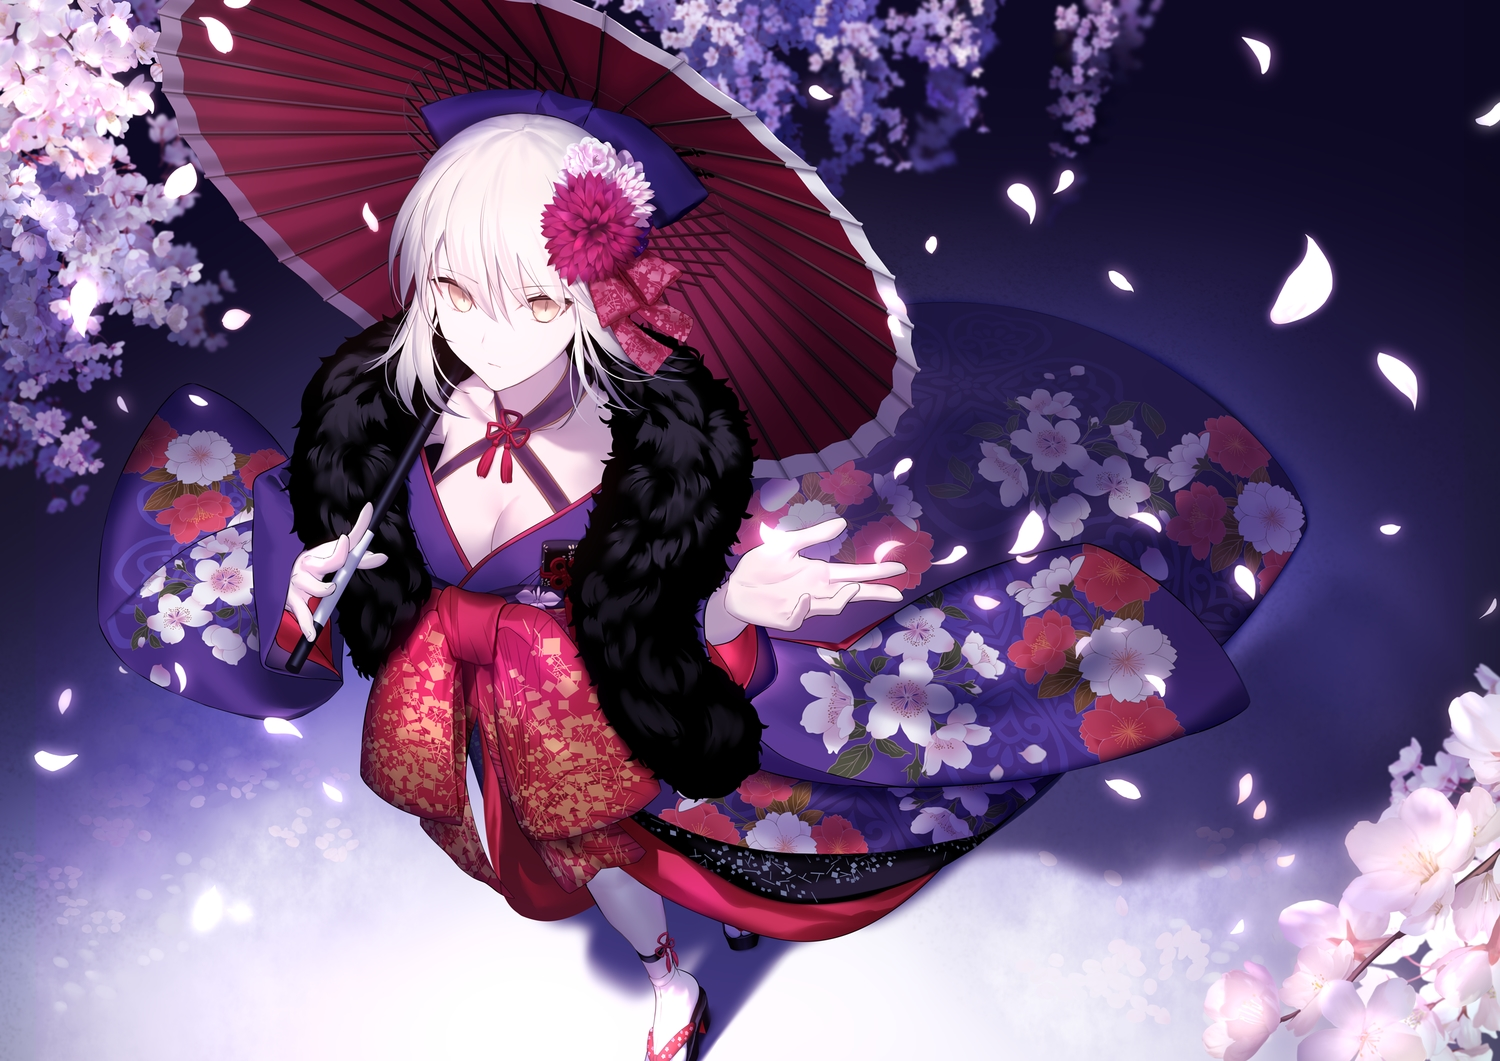 artoria_pendragon_(all) breasts cleavage fate/grand_order fate_(series) fate/stay_night flowers japanese_clothes kimono saber saber_alter shinooji umbrella